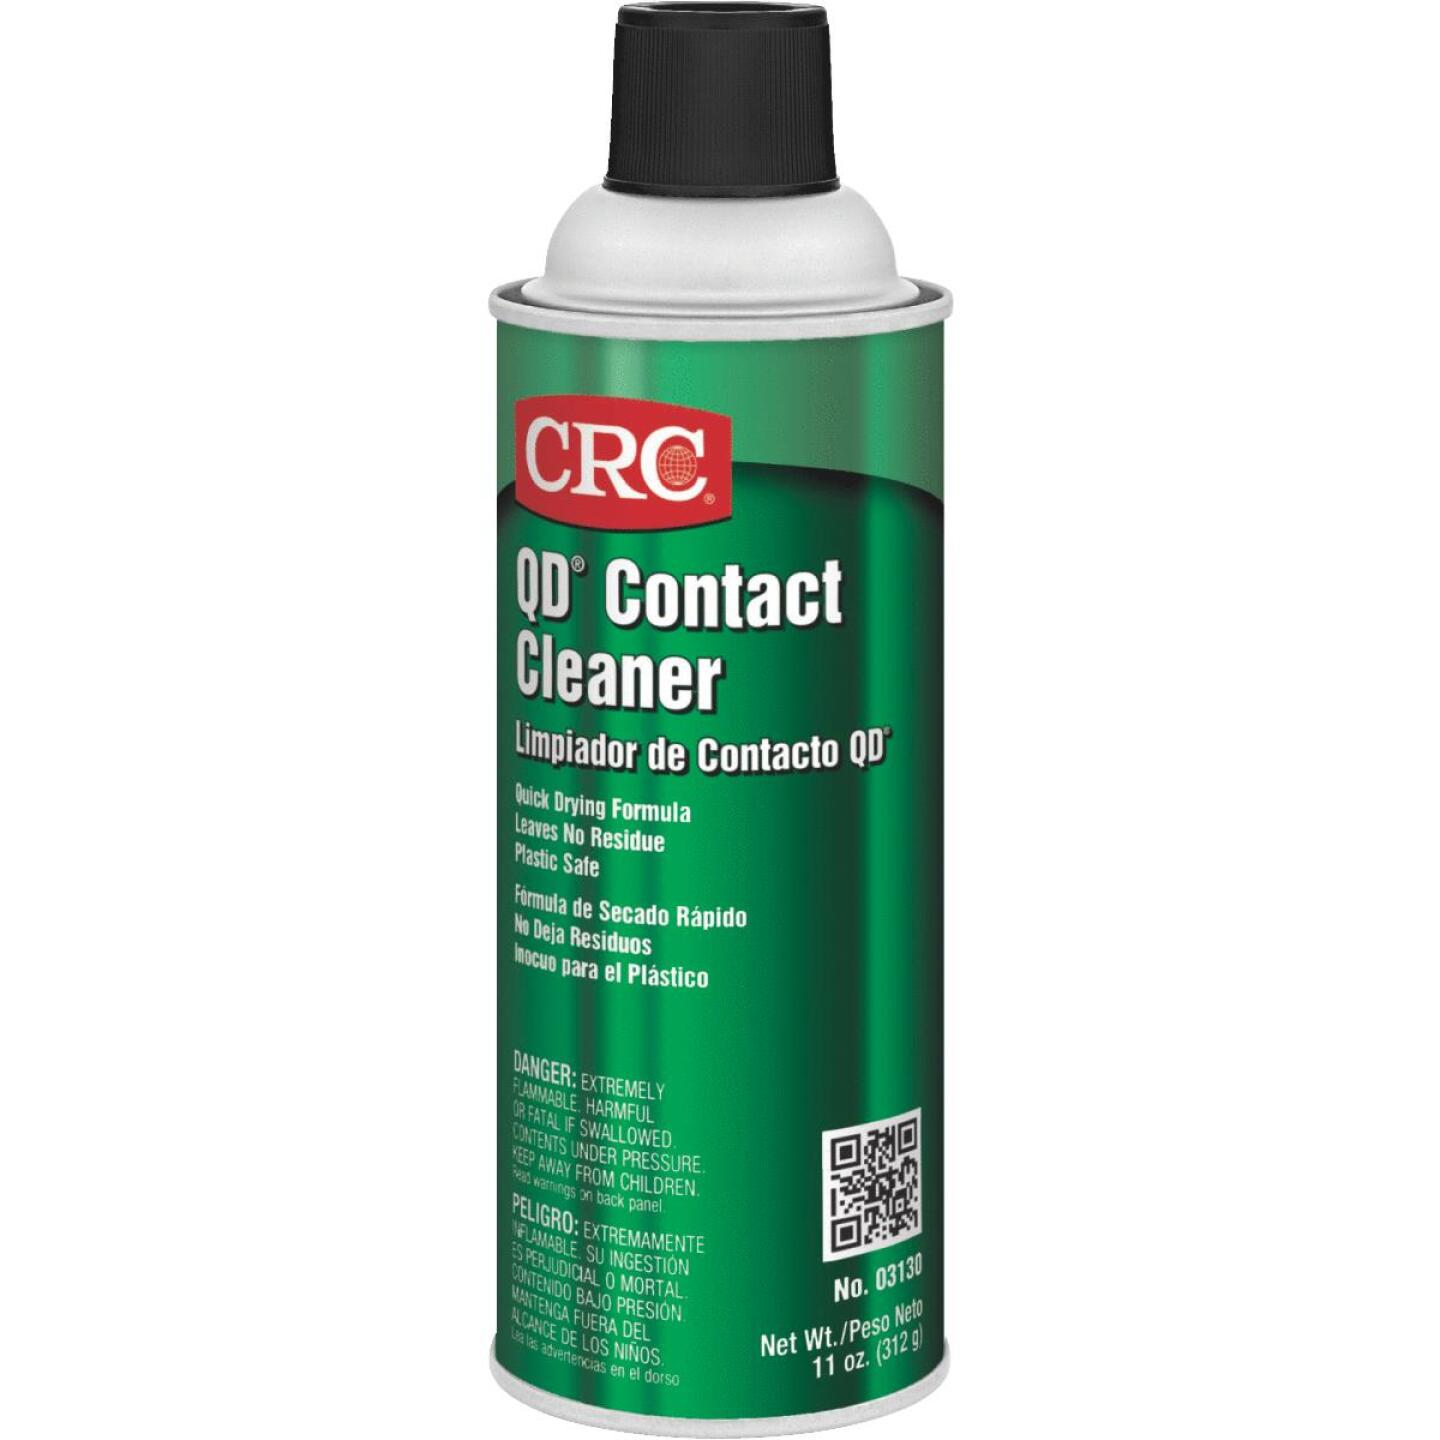 Crc Qd Industrial 11 Oz. Aerosol Electronic Parts Cleaner Image 1